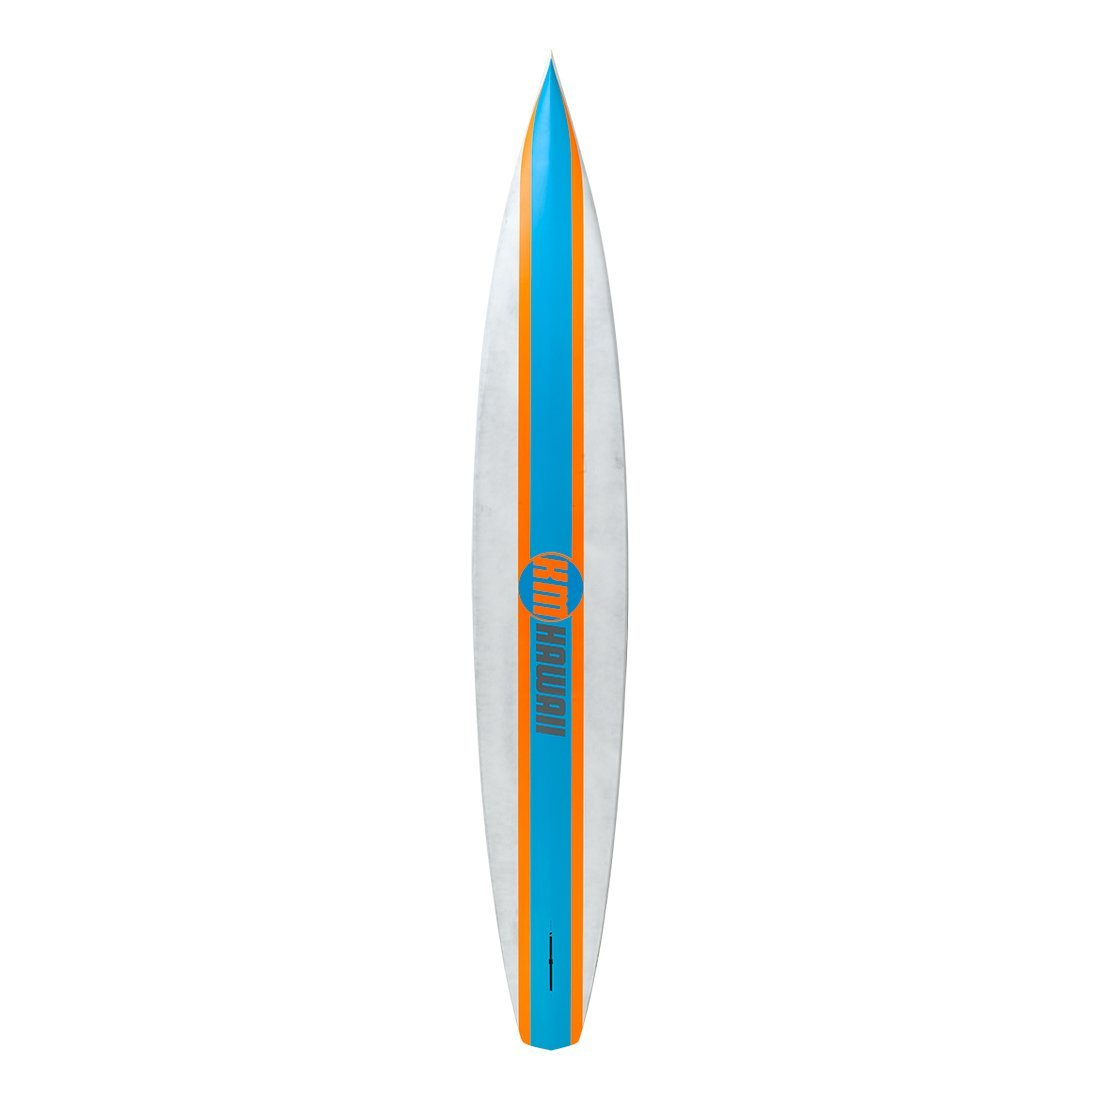 "KM Hawaii CompressorHP -BO-14'0"" x 26"" Carbon Fiber Performance Standup Paddle Board Paddle Boards 4theoutdoors America US USA SUP outdoors"